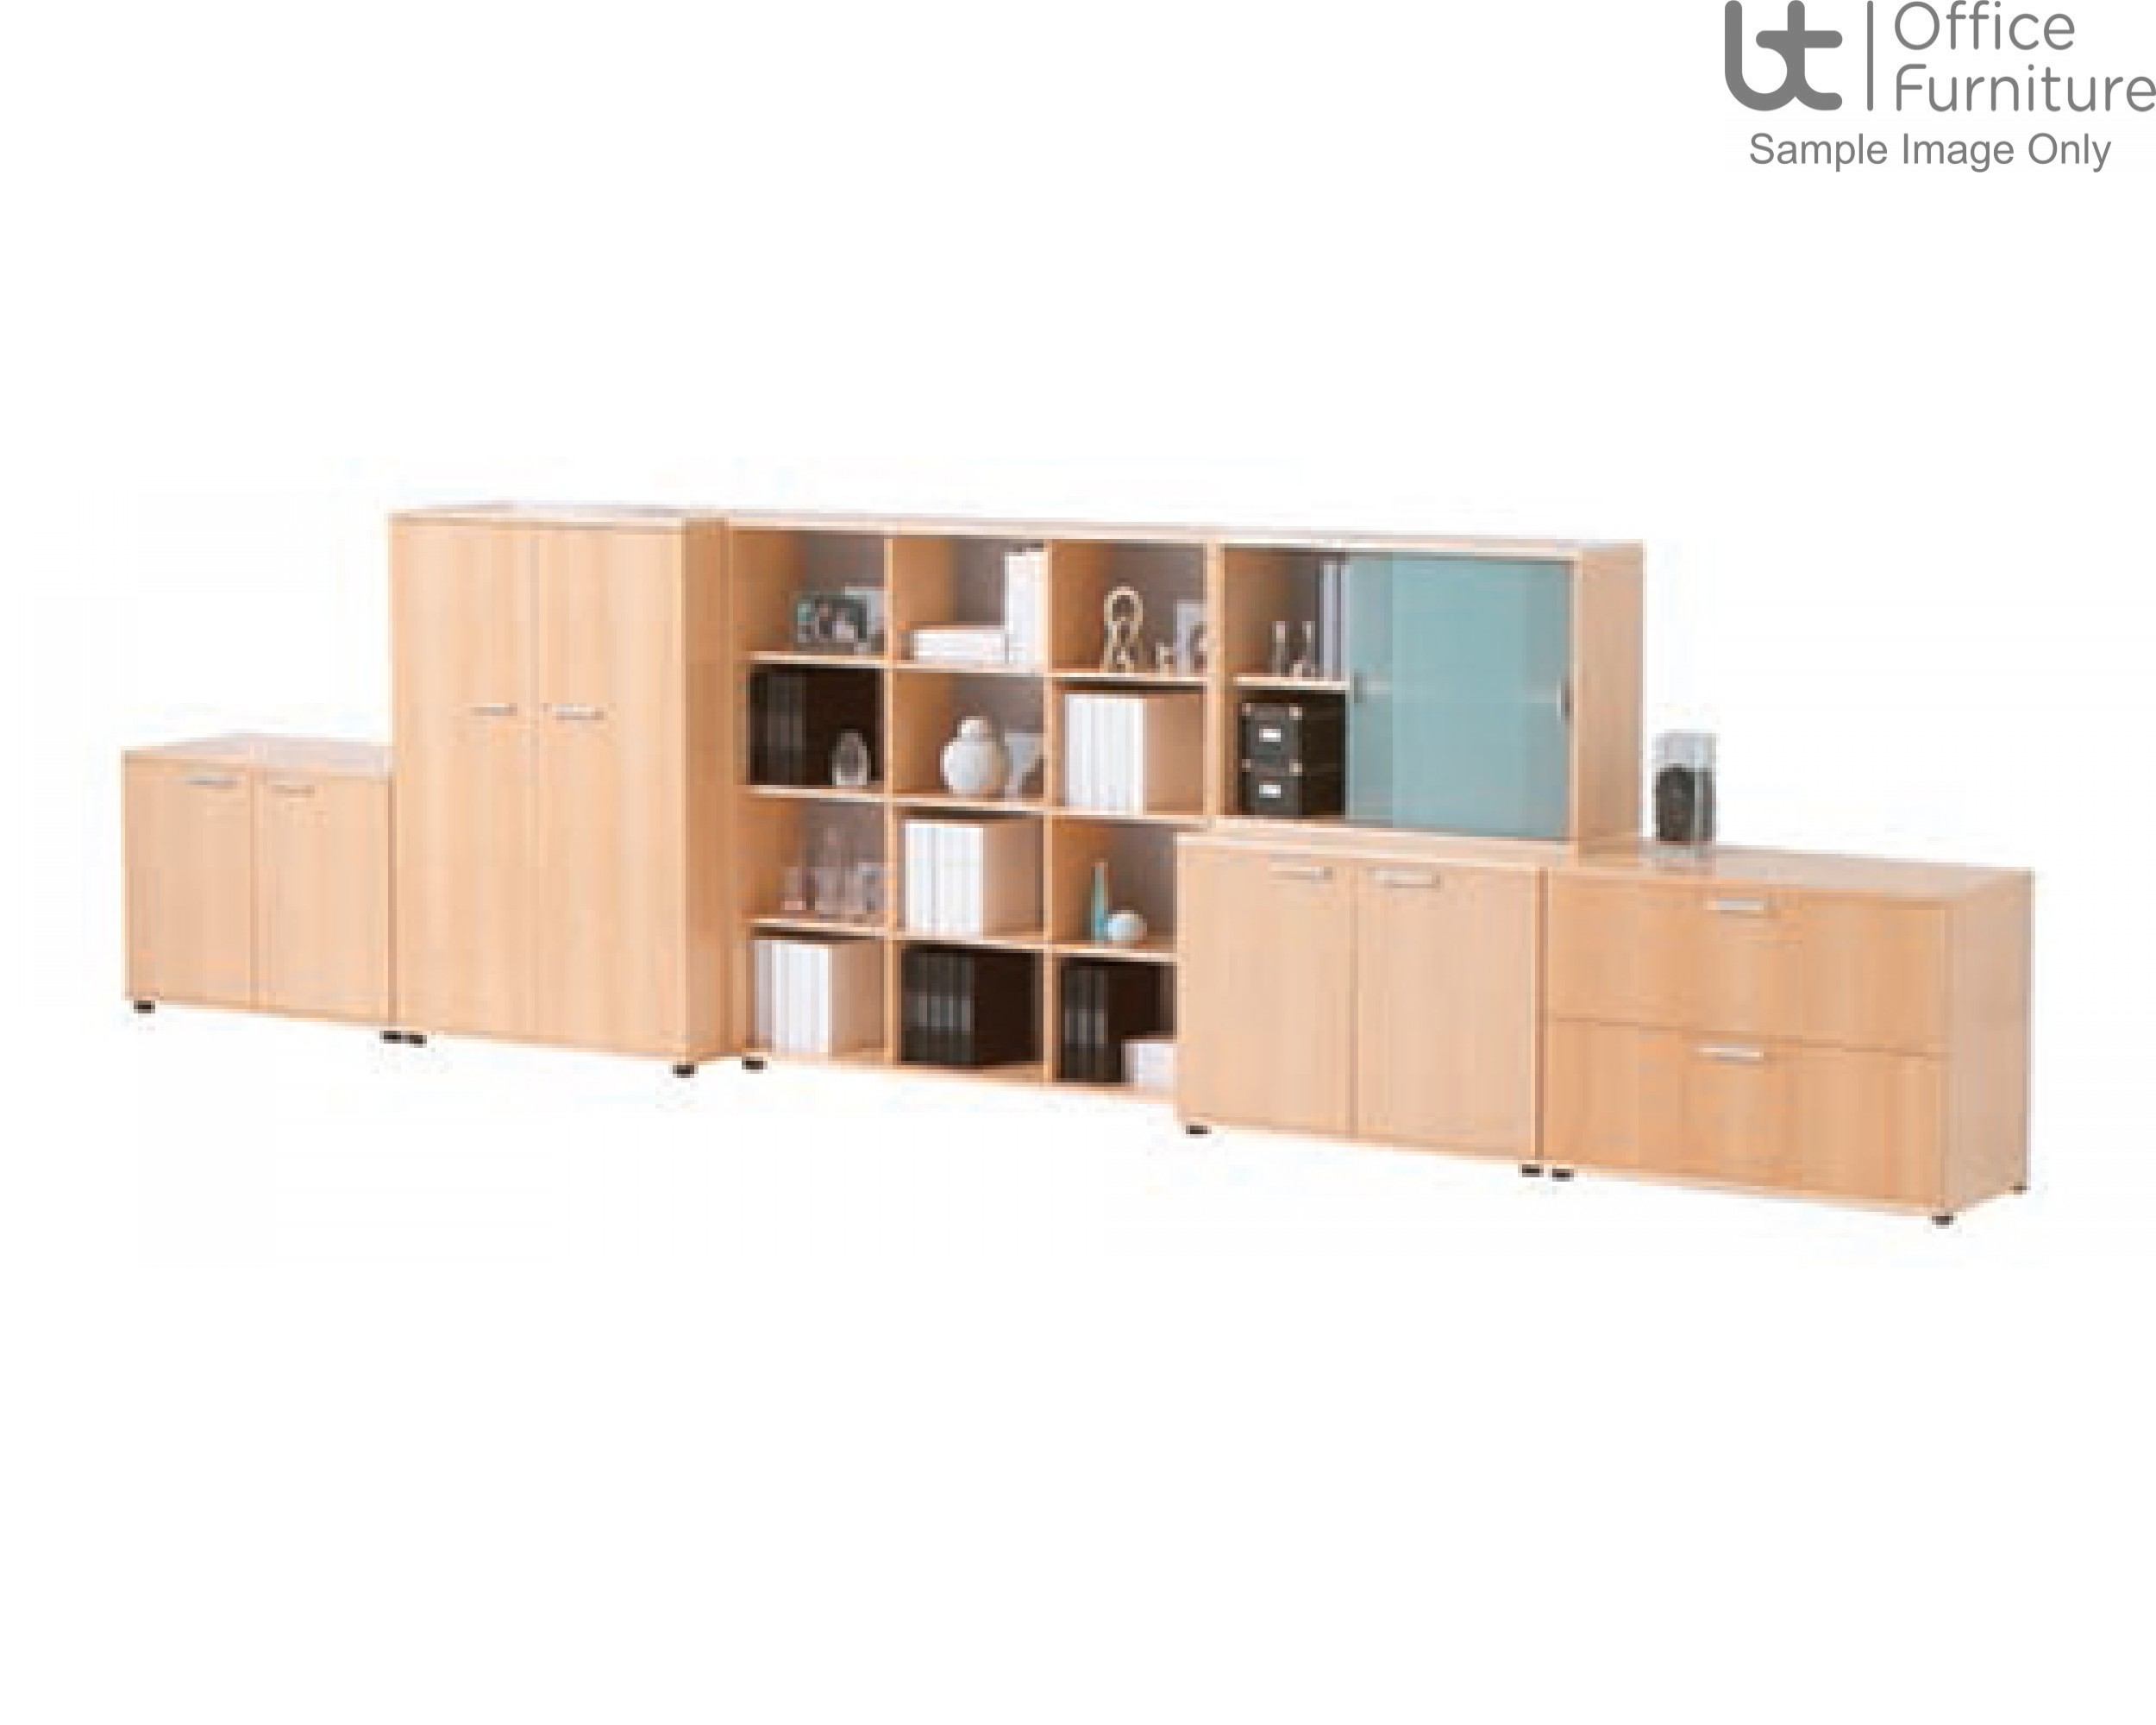 Verco Intuition Bookcase Unit with Frosted Glass Doors